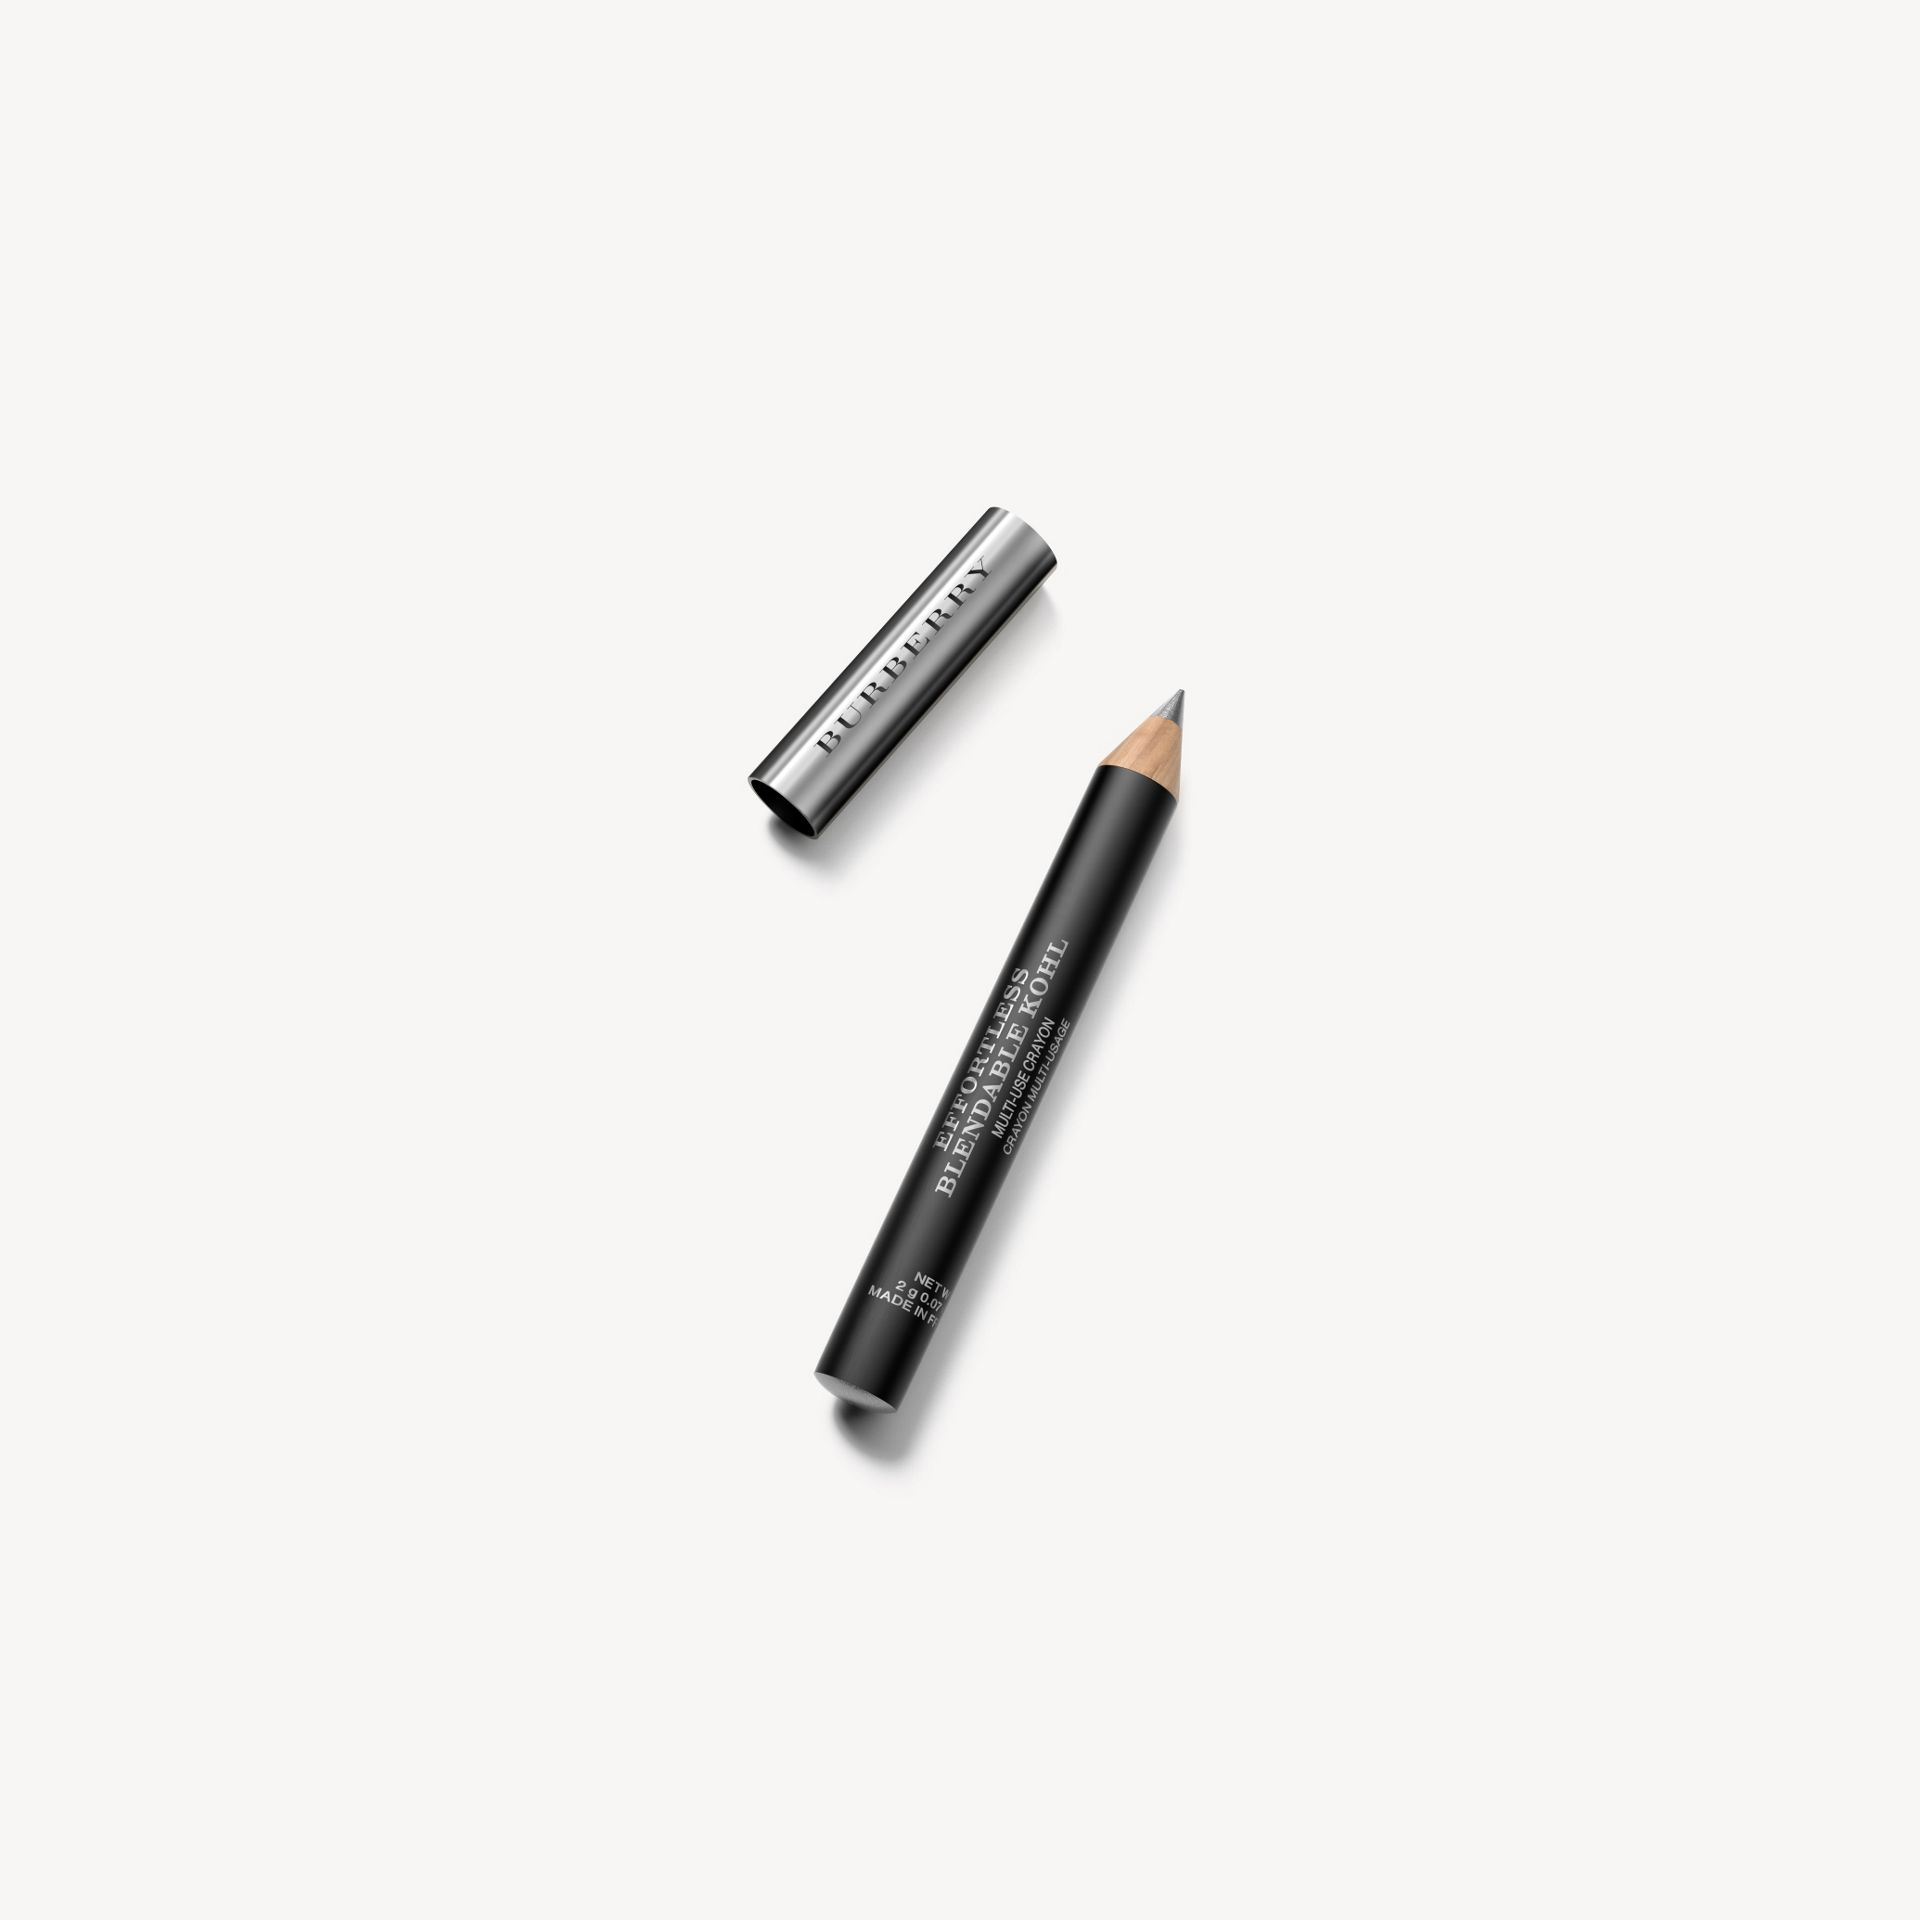 Pearl grey 04 Effortless Blendable Kohl – Pearl Grey No.04 - galeria de imagens 1